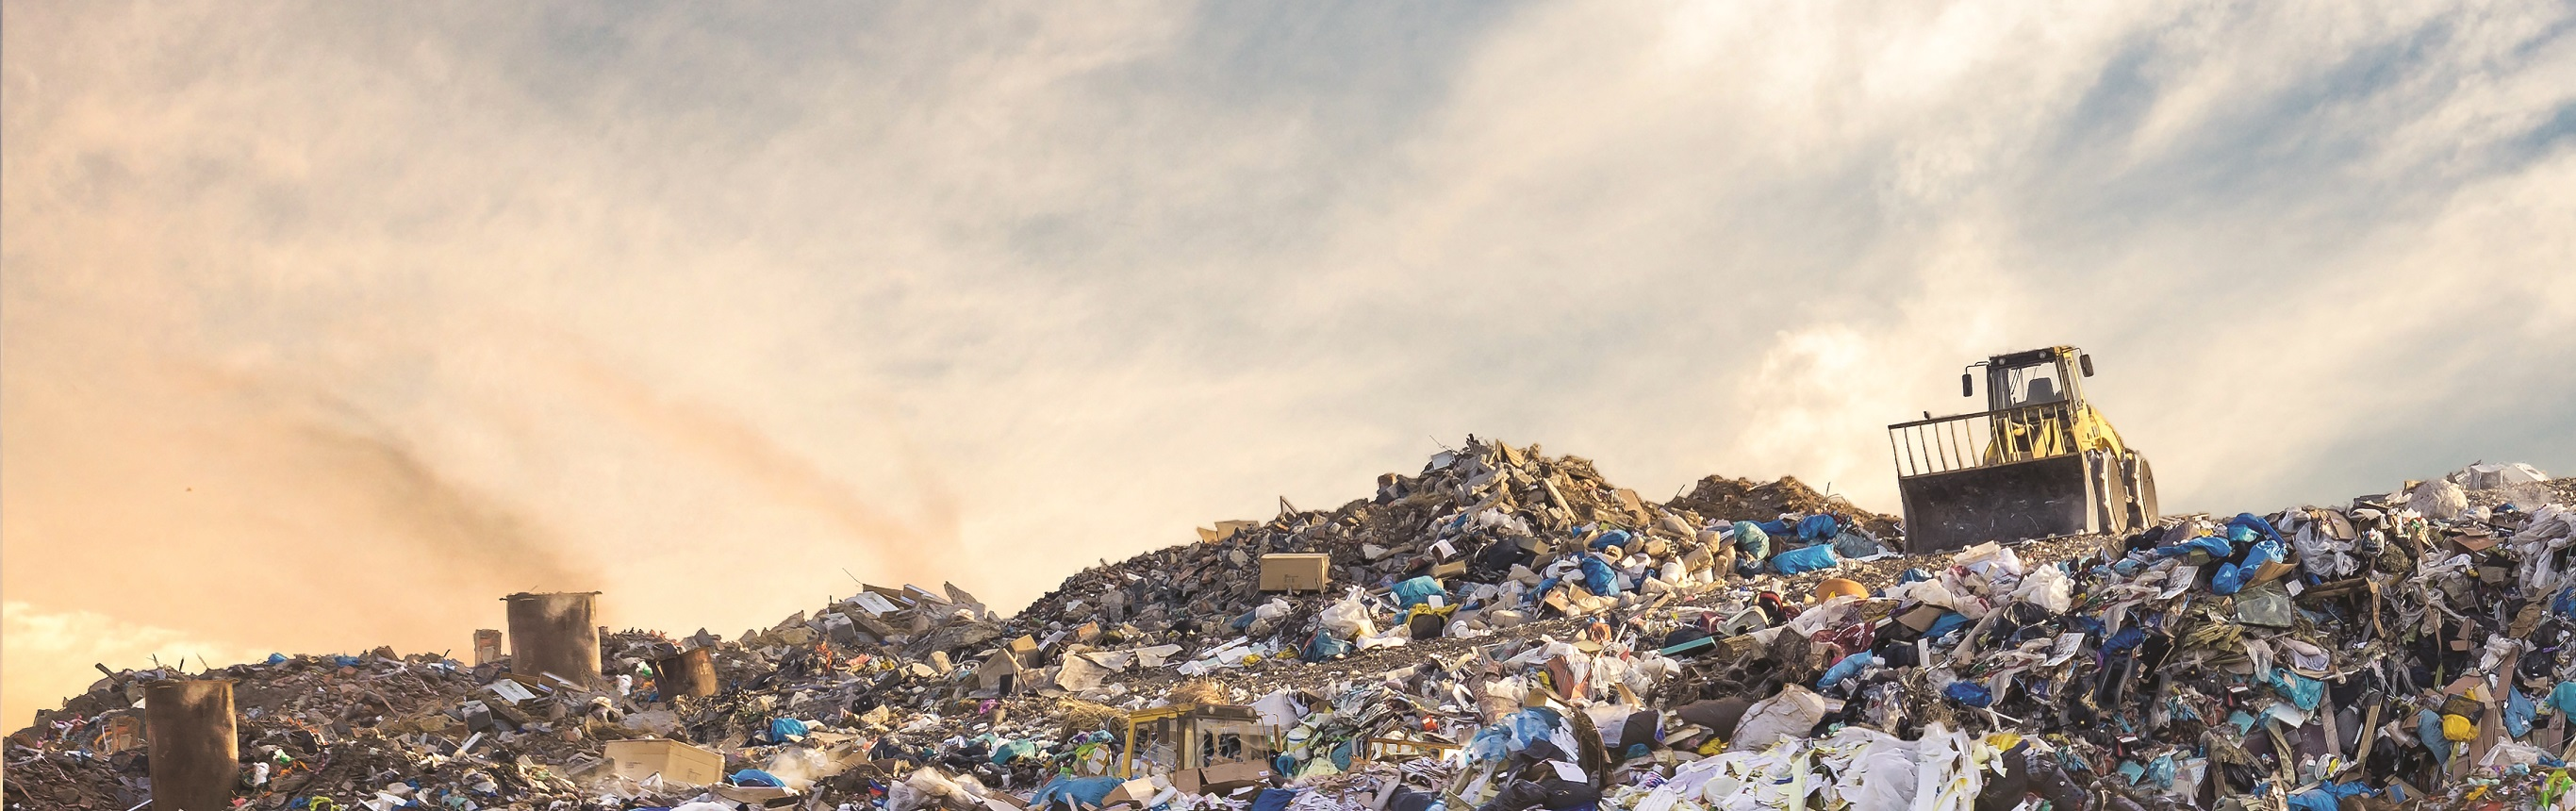 The Waste Problem